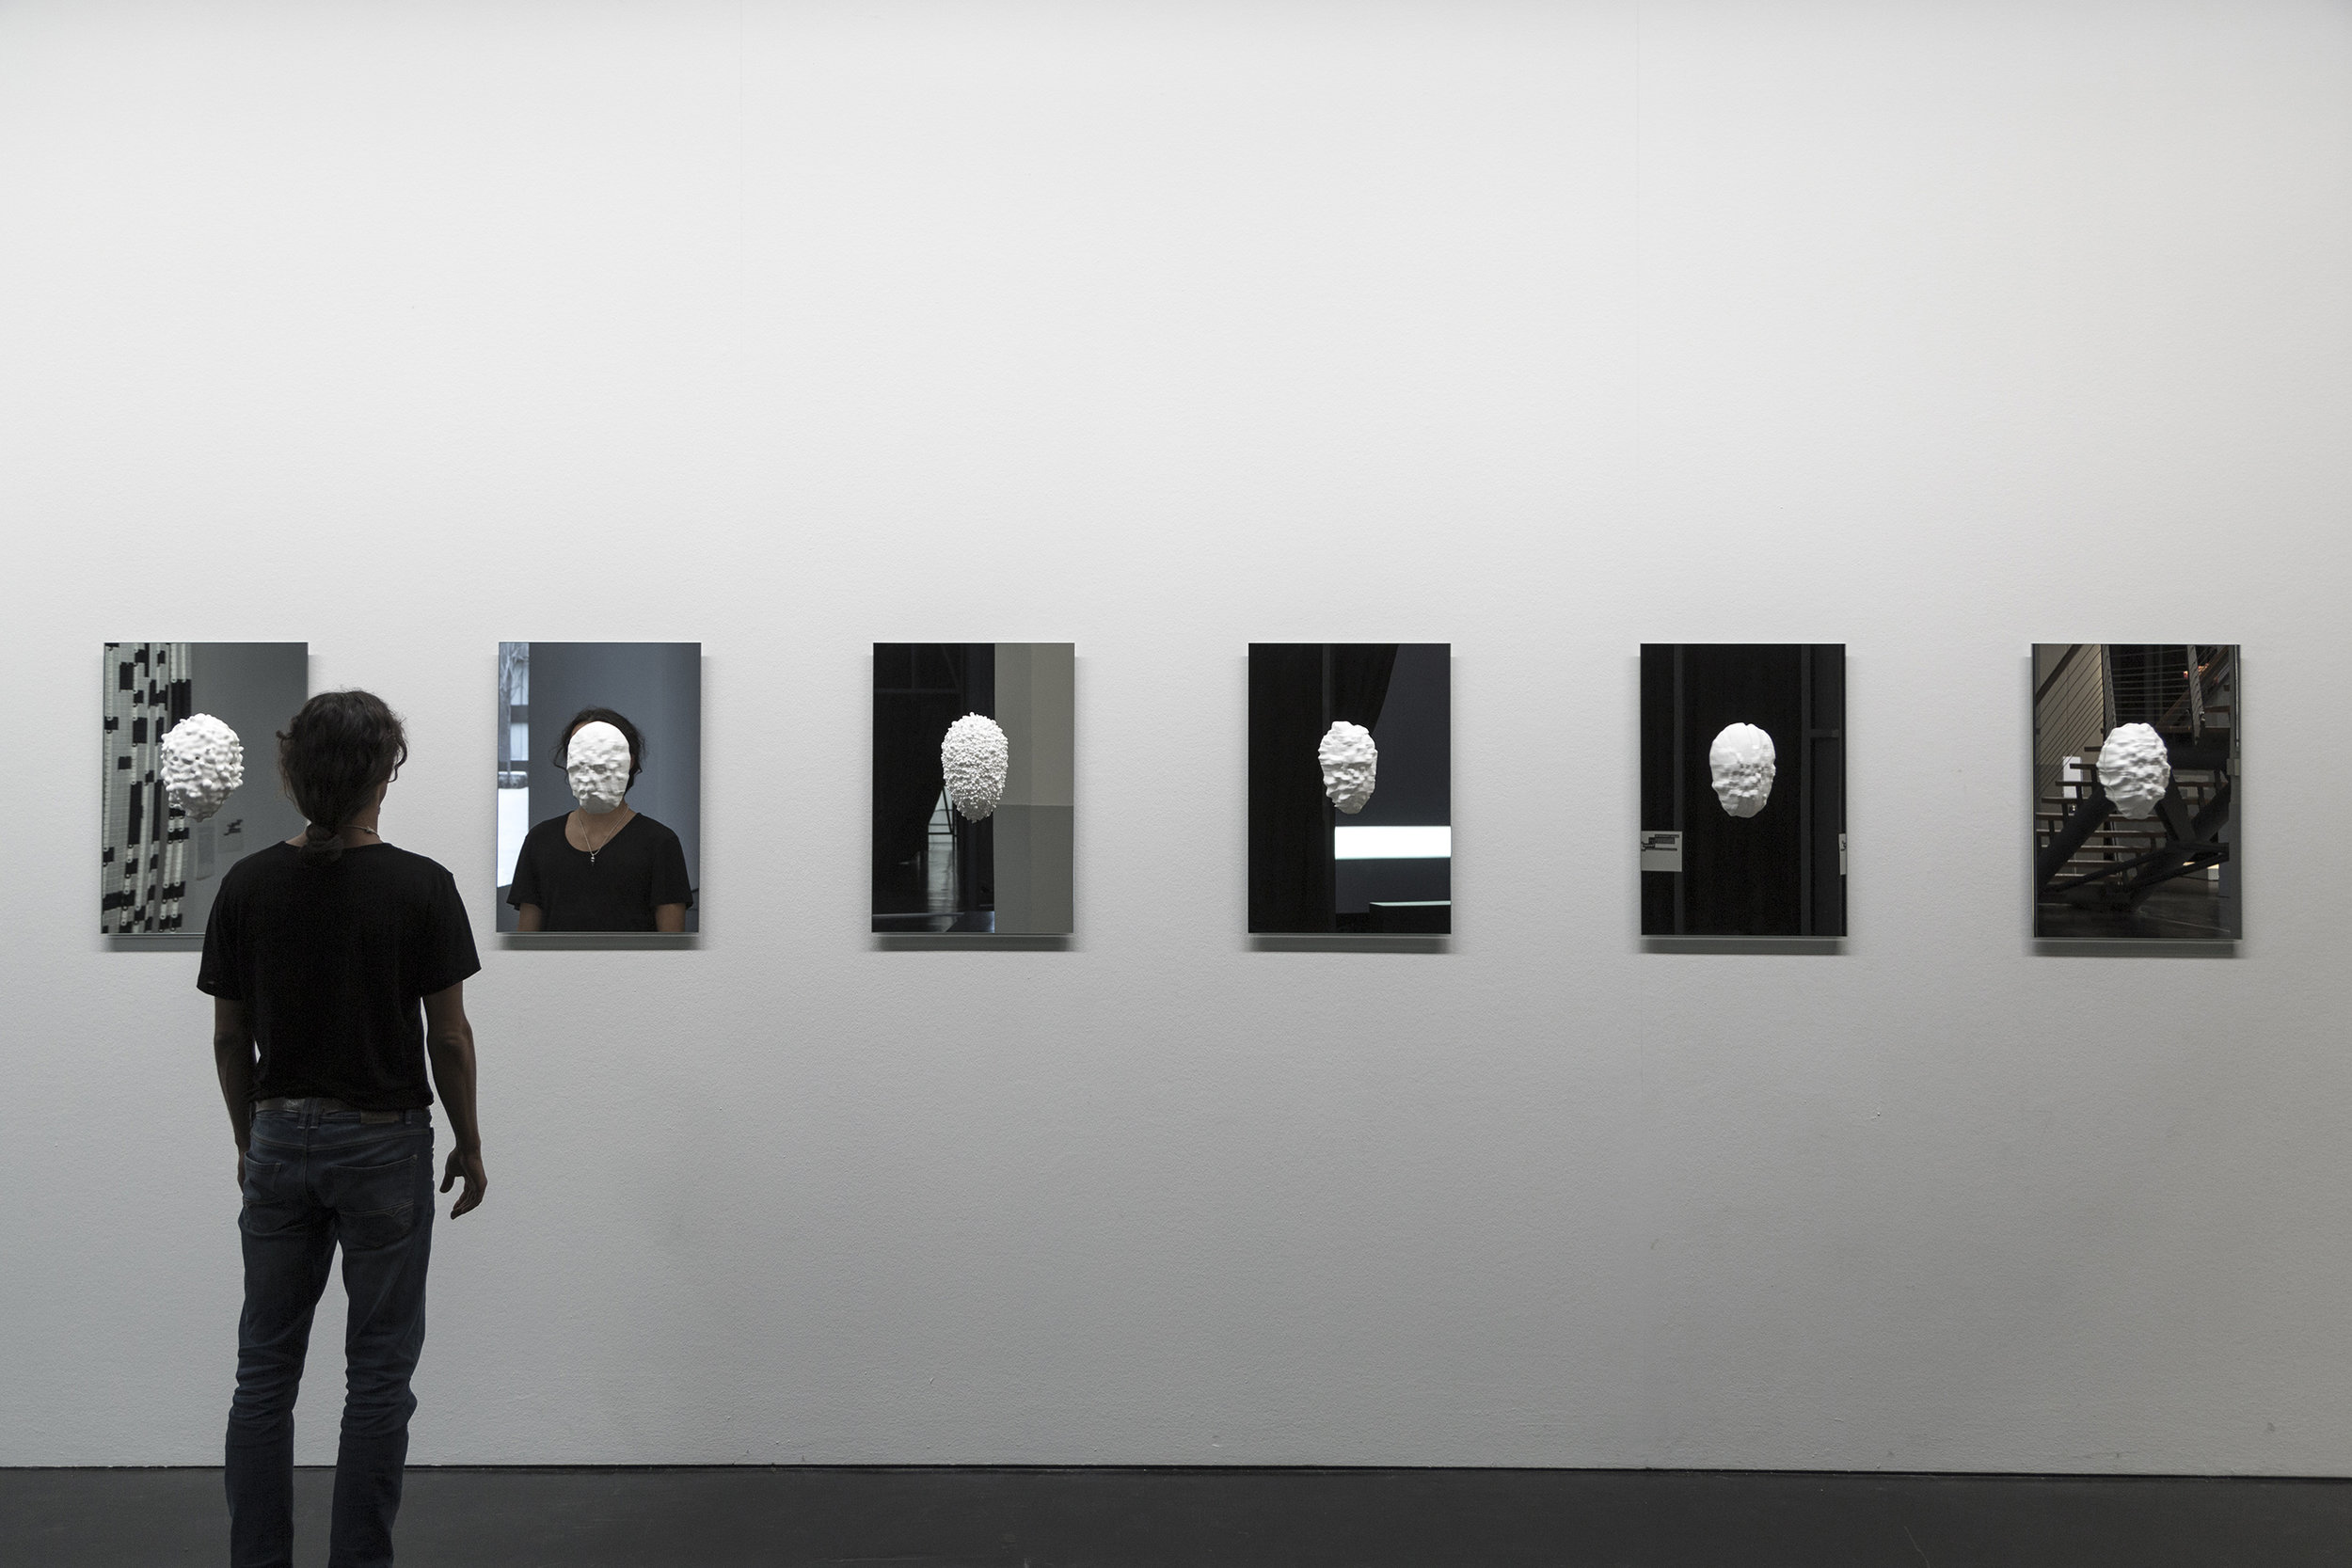 Sterling Crispin,   Data-Masks (Series) ,  2015 3D Printed Nylon, Mirror, Facial Recognition and Detection Algorithms, Genetic algorithms  18 x 26 inches | 45.7 x 66 cm each  || Installation View — ZKM Karlsruhe Museum ||